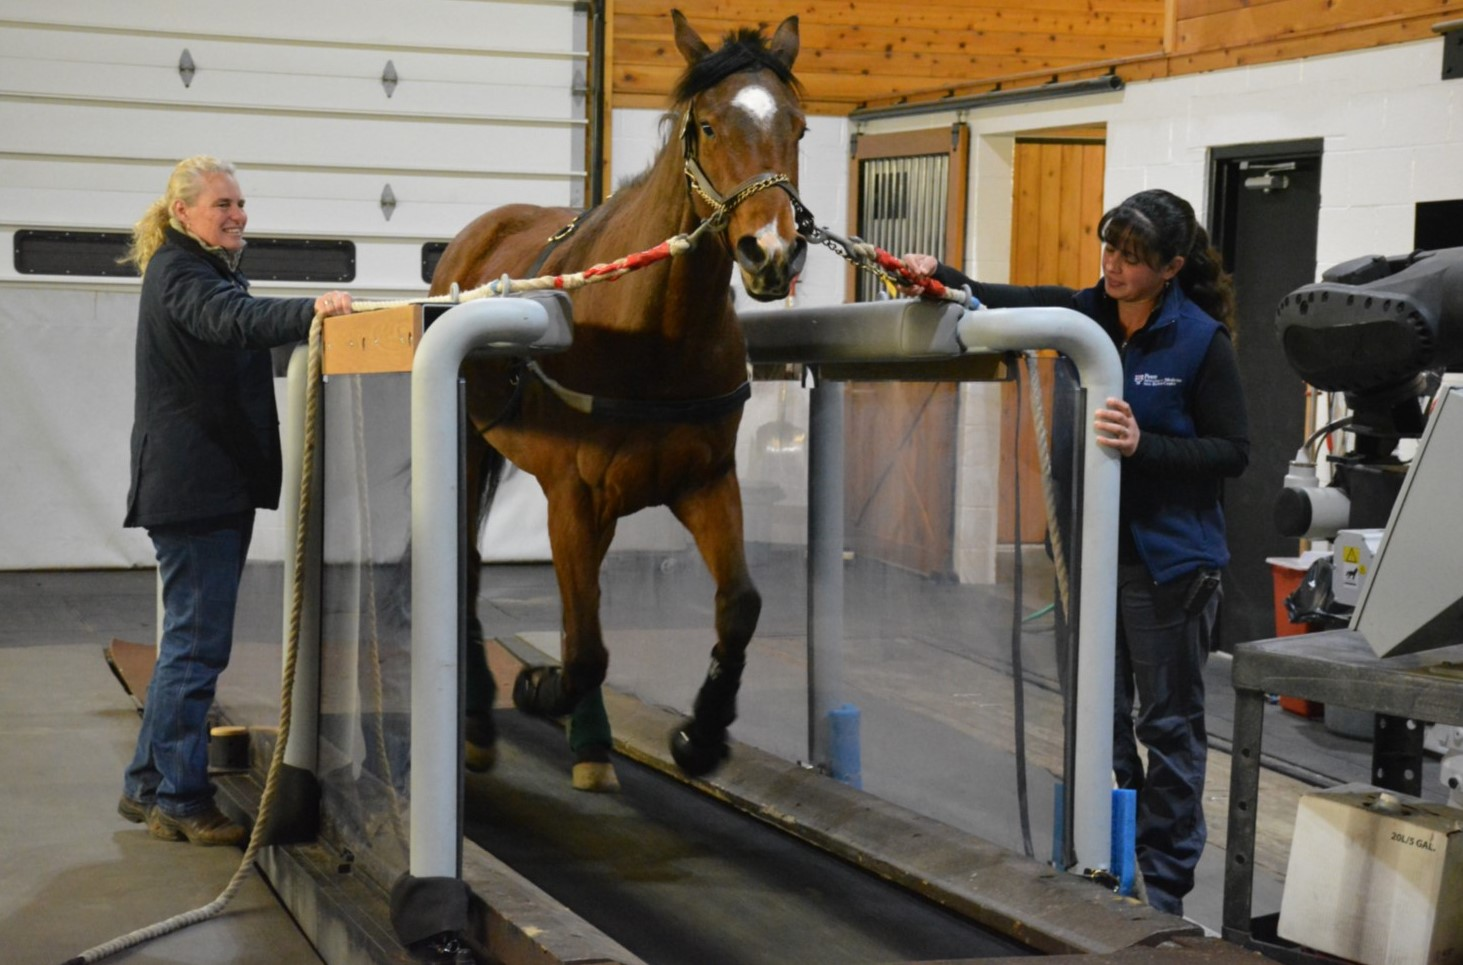 Researchers in Kennett Square, West Chester Battle Equine Doping to